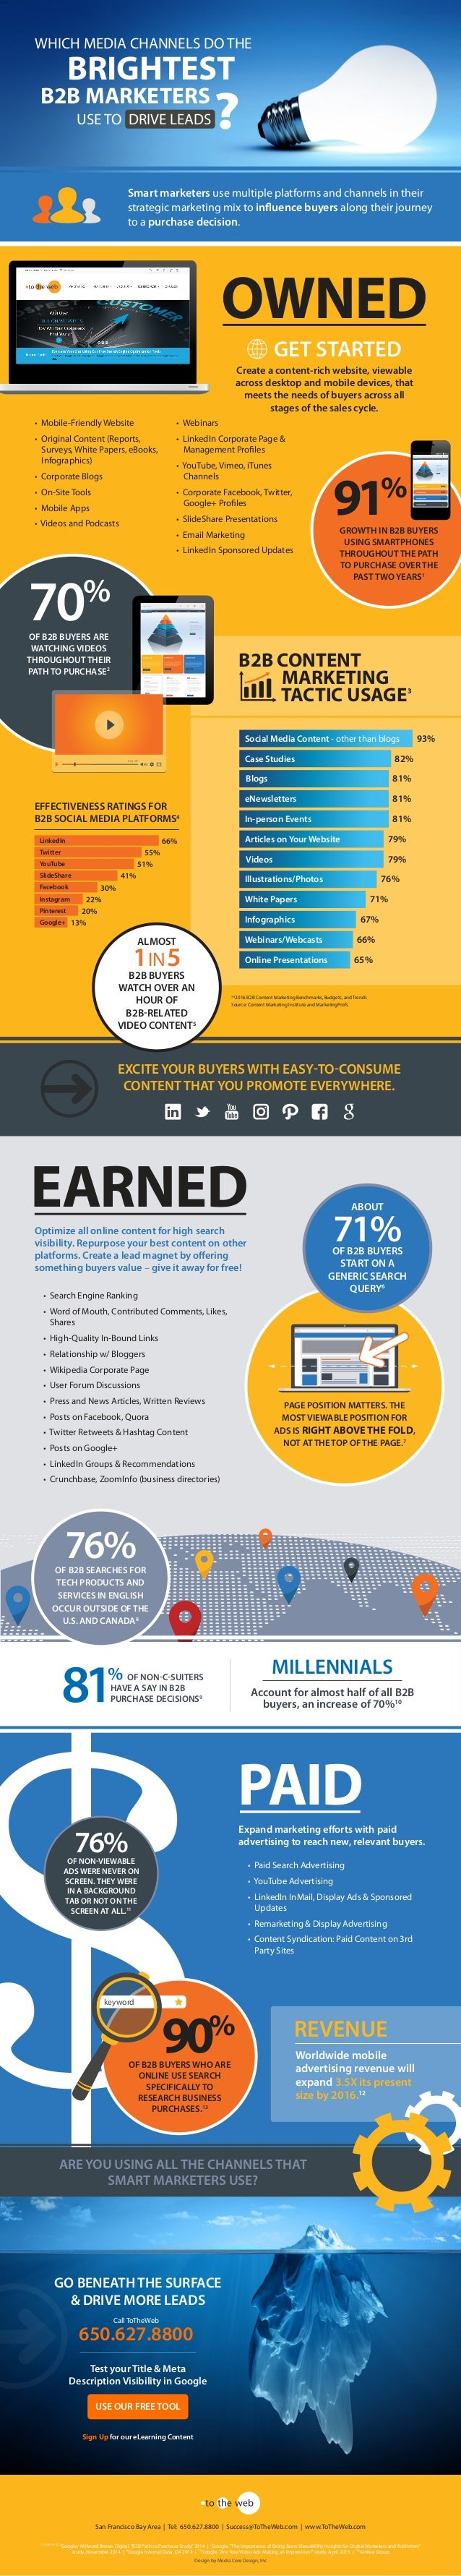 EARNED • Search Engine Ranking • Word of Mouth, Contributed Comments, Likes, Shares • High-Quality In-Bound Links • Relati...